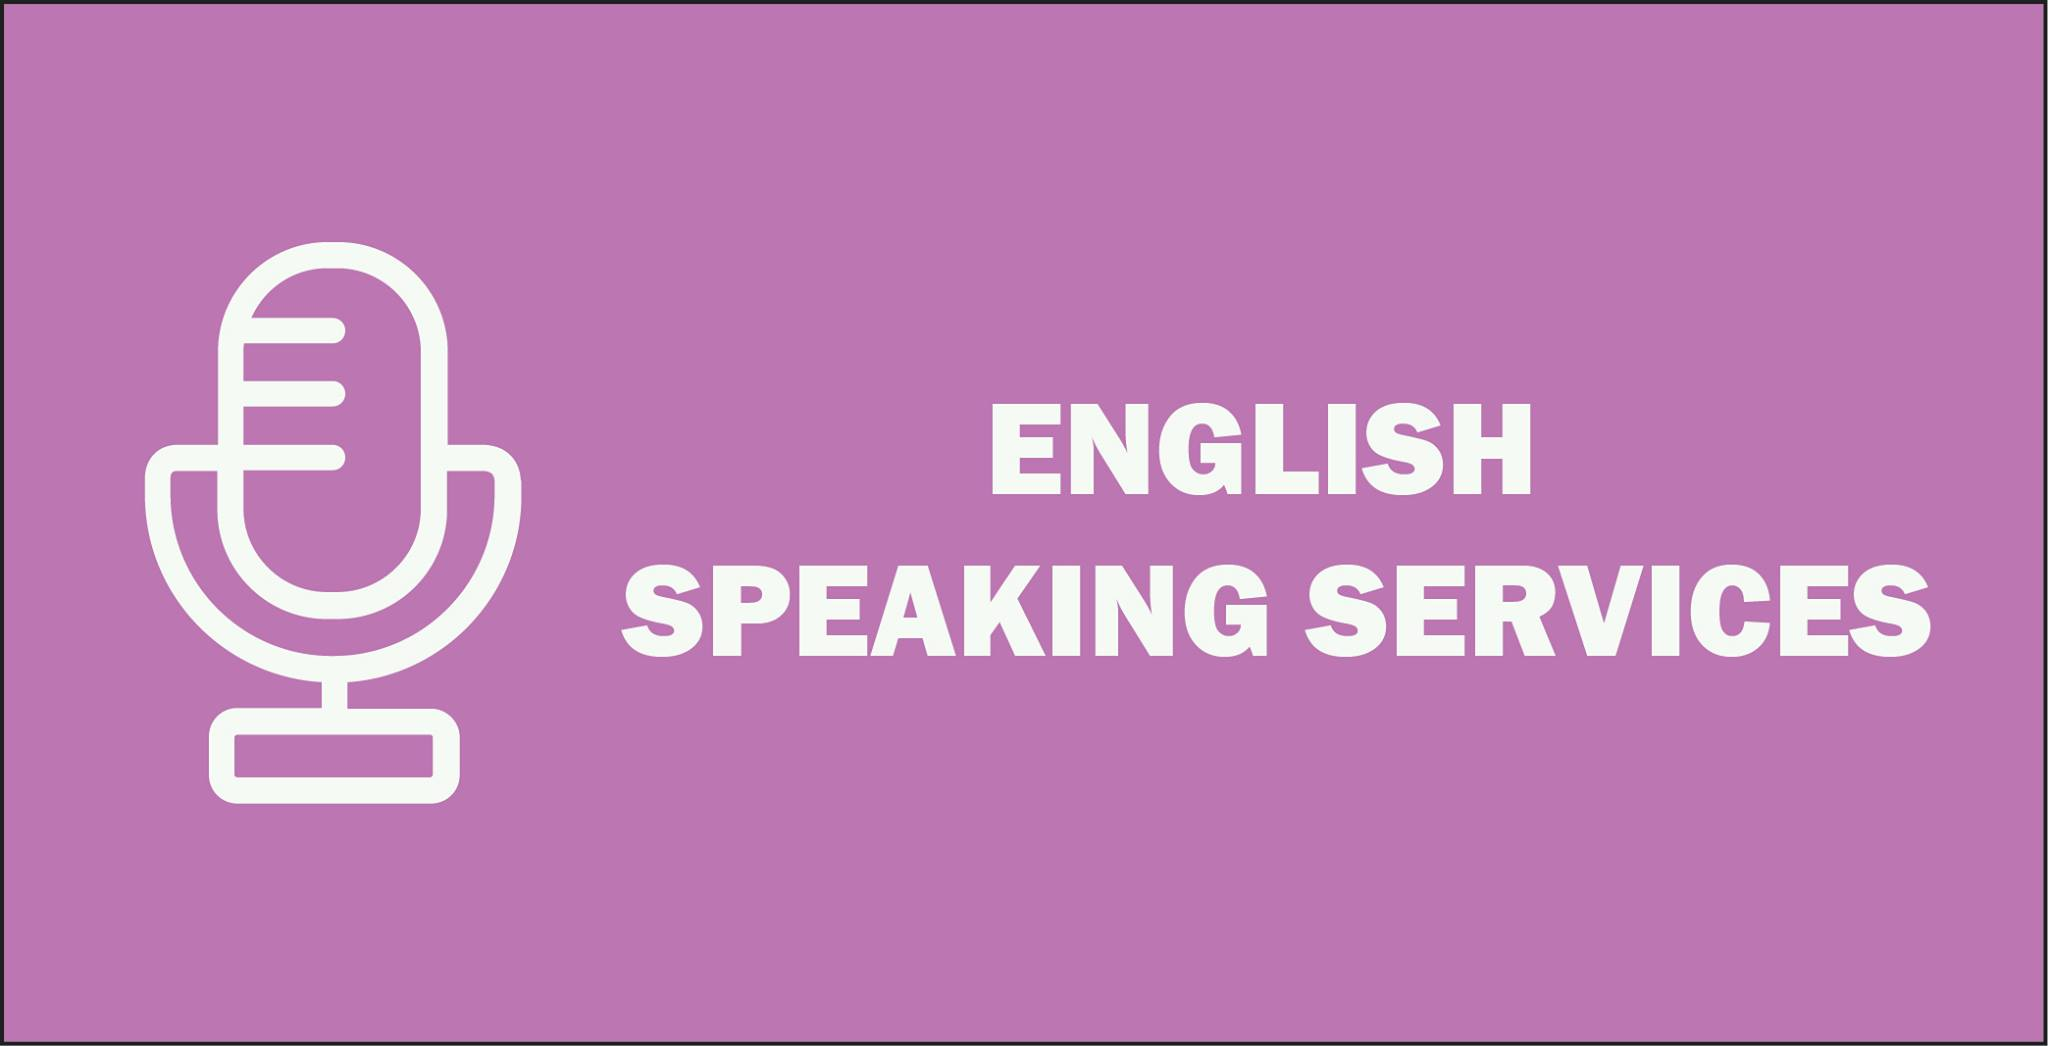 Recent ENGLISH Speaking Services